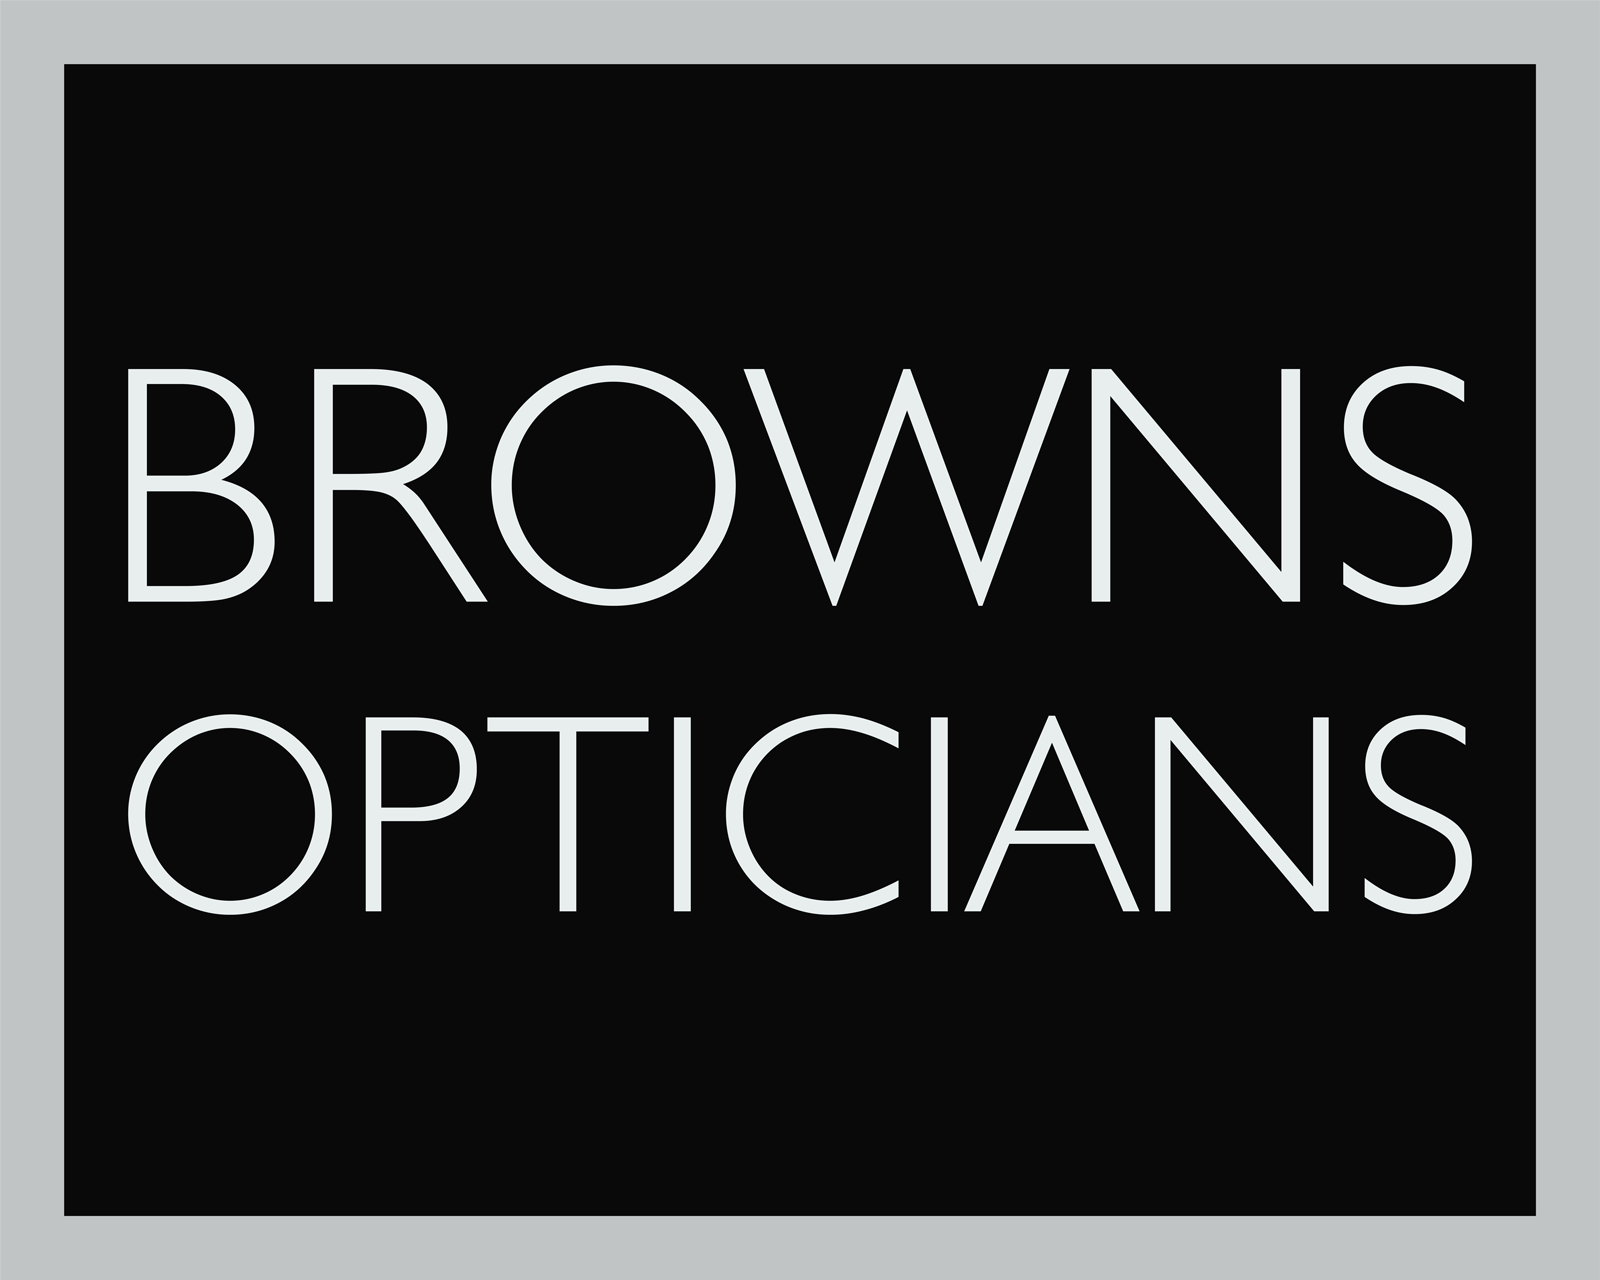 Browns Opticians